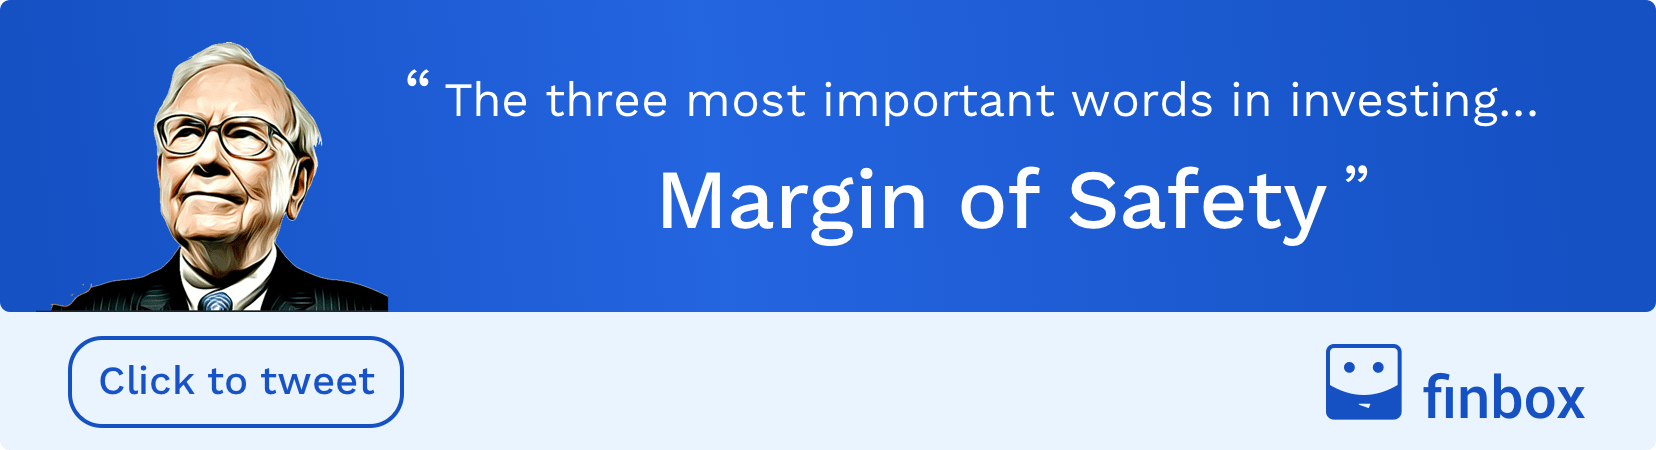 Warren Buffett Margin of Safety Quote - finbox.com